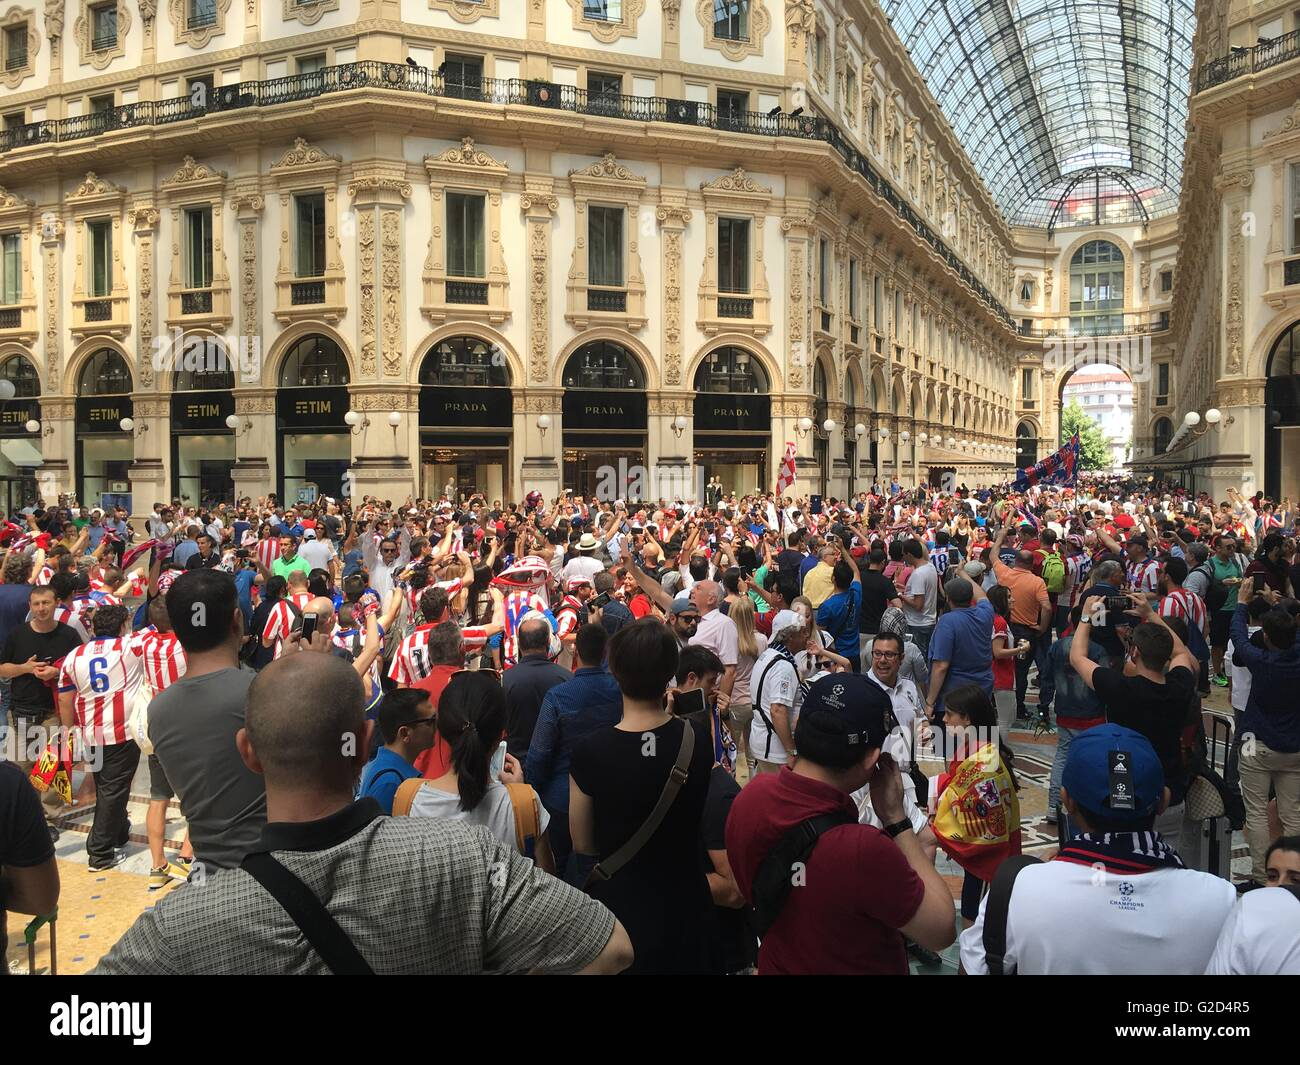 Milan, Italy 28th May, 2016. The 2016 UEFA Champions League Final .Tonight will be played in Milan the Champions Stock Photo